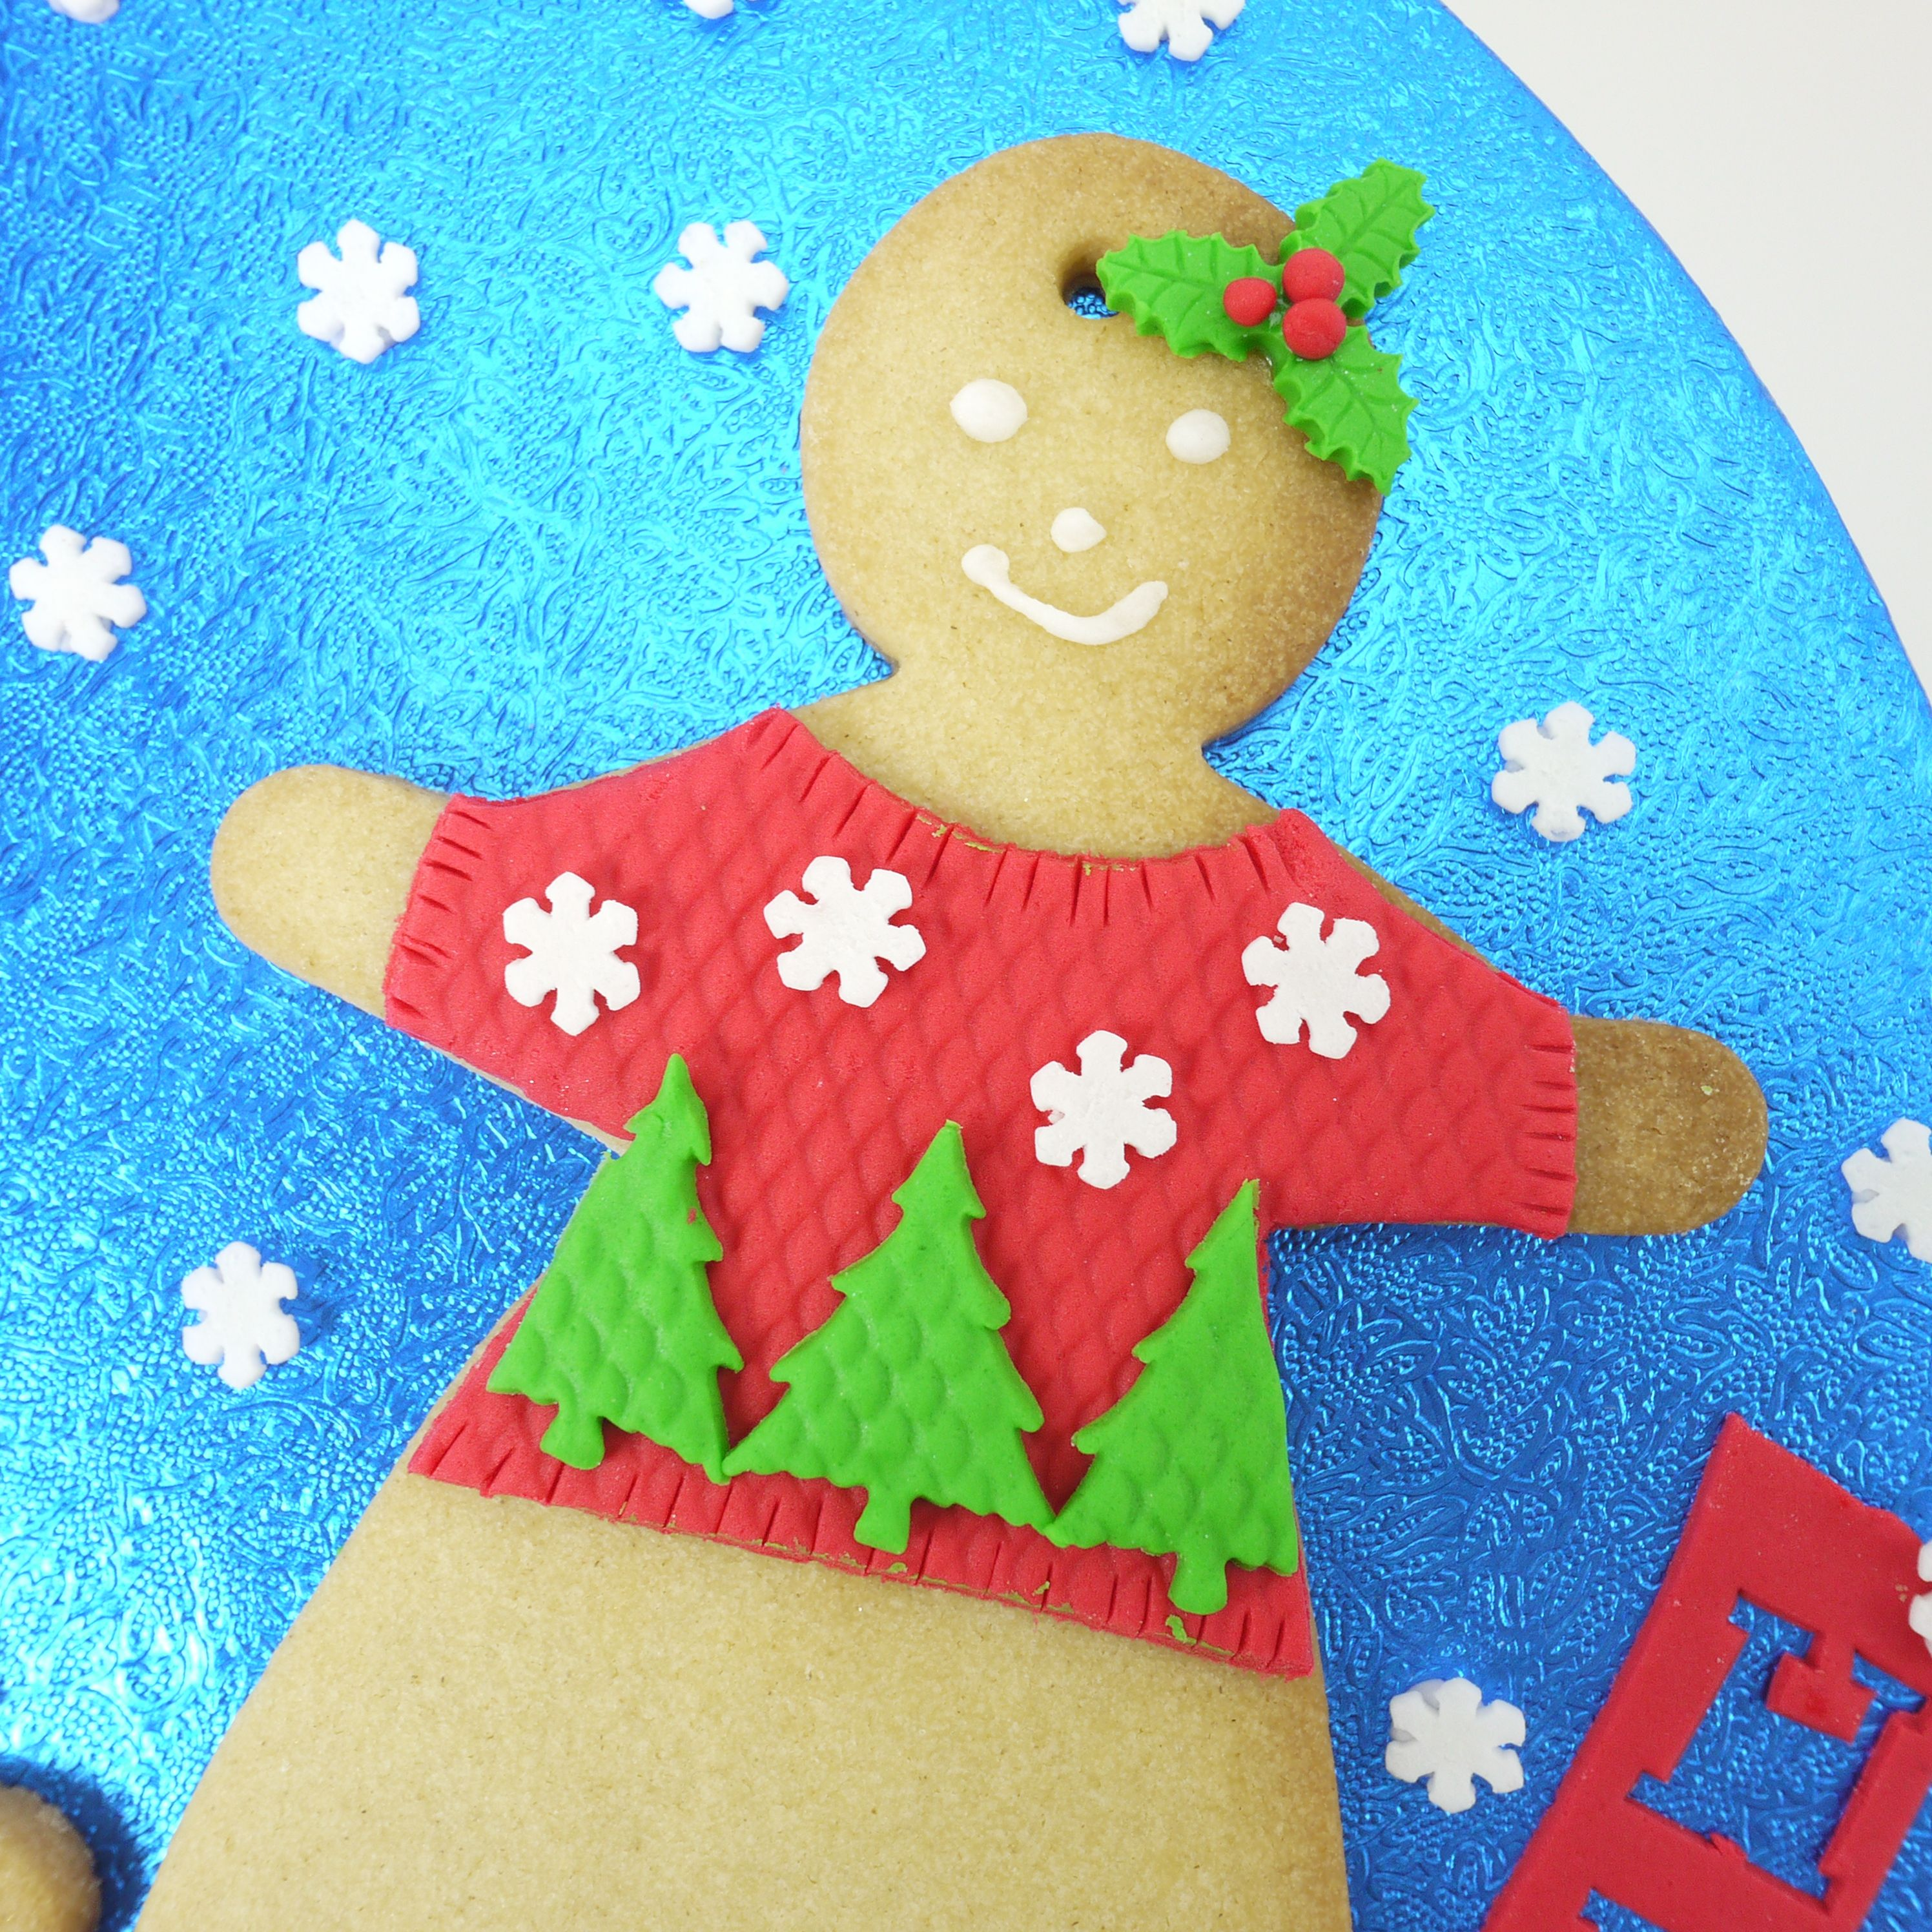 Mrs Gingerbread and her festive Christmas jumper!